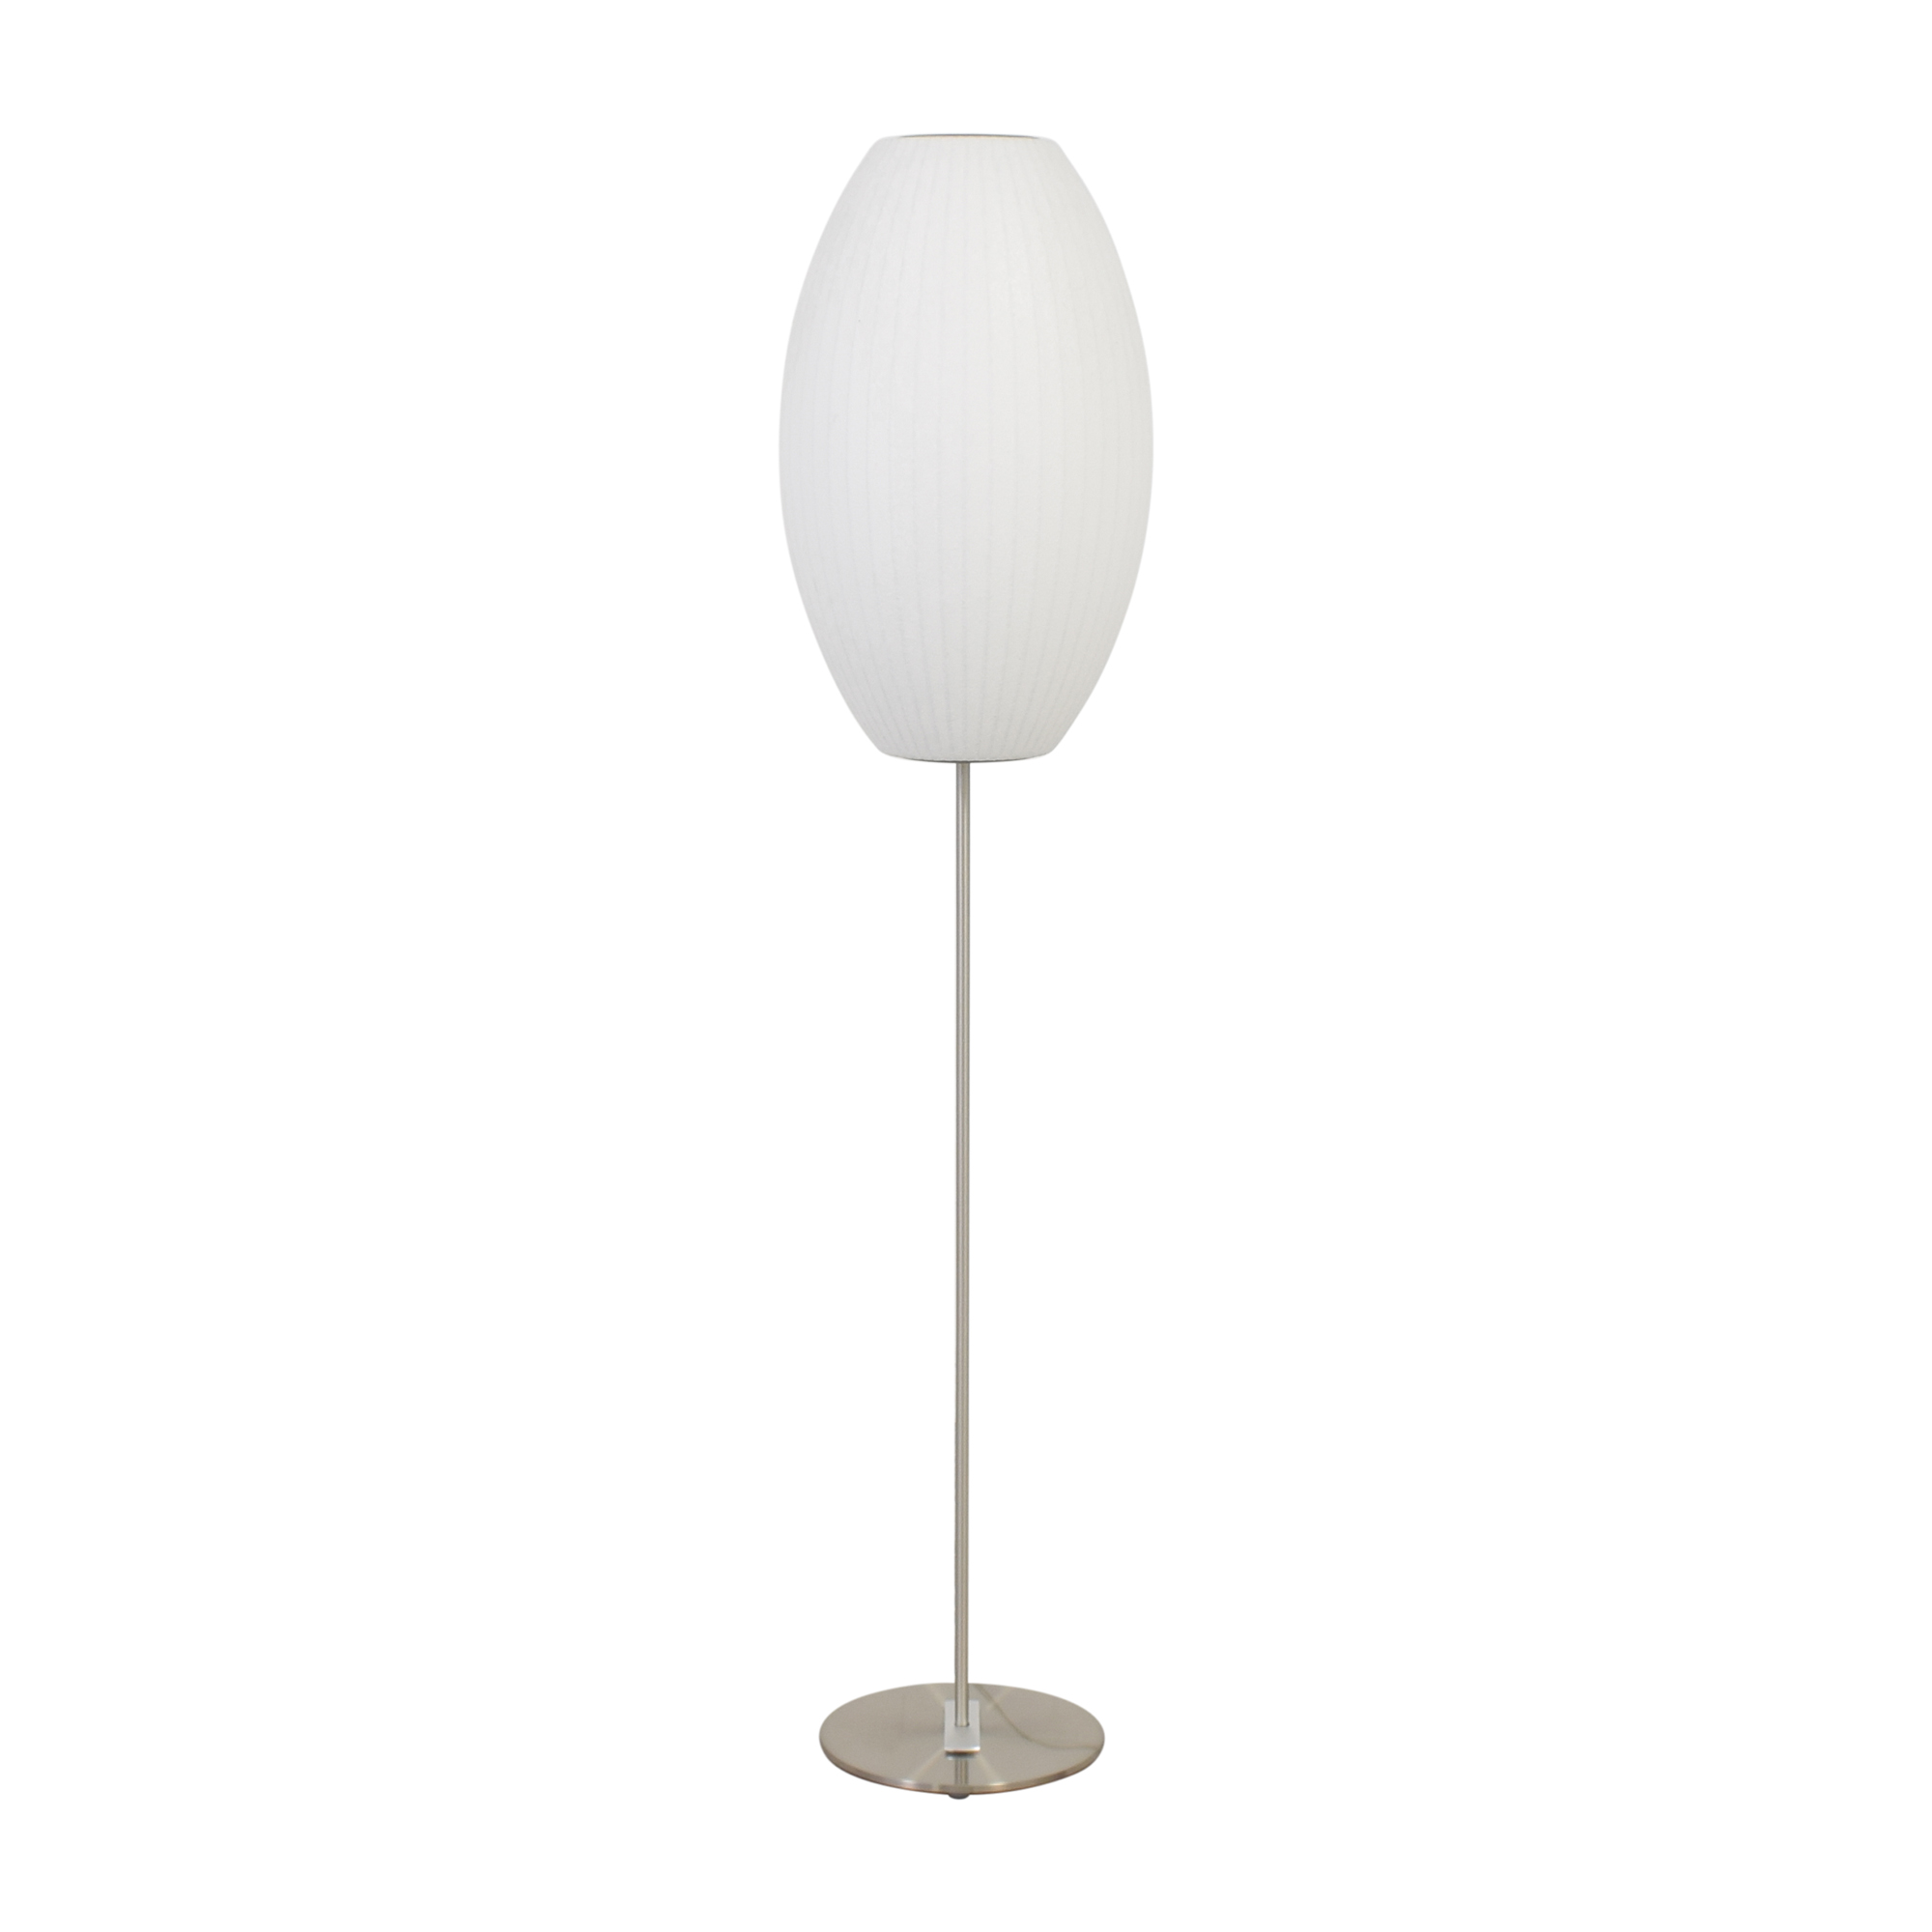 Modernica Modernica Nelson Bubble Lamps Cigar Lotus Floor Lamp pa